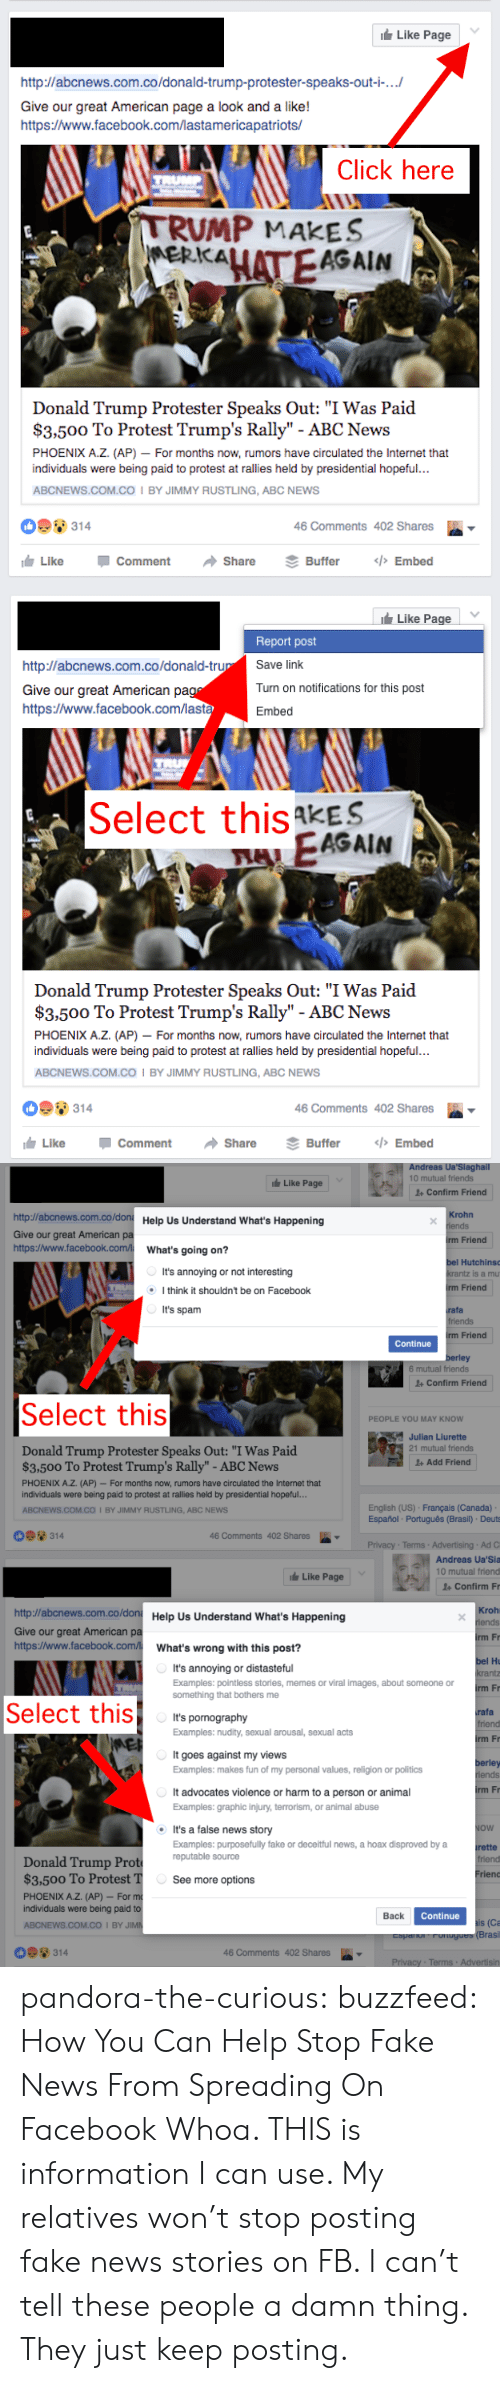 "Portugues: Like Page  http://abcnews.com.co/donald-trump-protester-speaks-out-i-...  Give our great American page a look and a like!  http:/www.facebook.com/lastamericapatriots/  Click here  TRUMP  TRUMP MAKES  MERKALATEAGAIN  Donald Trump Protester Speaks Out: ""I Was Paid  $3,500 To Protest Trump's Rally"" - ABC News  PHOENIX A.Z. (AP) - For months now, rumors have circulated the Internet that  individuals were being paid to protest at rallies held by presidential hopeful..  ABCNEWS.COM.Co I BY JIMMY RUSTLING, ABC NEWS  314  46 Comments 402 Shares  Like  </>Embed  Comment  Share  Buffer   Like Page  Report post  Save link  http://abcnews.com.co/donald-trup  Turn on notifications for this post  Give our great American pag  https:/www.facebook.com/lasta  Embed  Select this kES  FAEAGAIN  Donald Trump Protester Speaks Out: ""I Was Paid  $3,500 To Protest Trump's Rally"" - ABC News  PHOENIX A.Z. (AP) For months now, rumors have circulated the Internet that  individuals were being paid to protest at rallies held by presidential hopeful...  ABCNEWS.COM.CO I BY JIMMY RUSTLING, ABC NEWS  314  46 Comments 402 Shares  <>Embed  Like  Comment  Share  Buffer   Andreas Ua'Siaghall  10 mutual friends  Like Page  1Confirm Friend  http://abcnews.com.co/don Help Us Understand What's Happening  Krohn  iends  Give our great American pa  http://www.facebook.com/  irm Friend  What's going on?  bel Hutchins  It's annoying or not interesting  krantz is a mu  rm Friend  Ithink it shouldn't be on Facebook  It's spam  rafa  friends  rm Friend  Continue  berley  6 mutual friends  Confirm Friend  Select this  PEOPLE YOU MAY KNOW  Julian Liurette  21 mutual friends  Donald Trump Protester Speaks Out: ""I Was Paid  $3.500 To Protest Trump's Rally"" - ABC News  Add Friend  PHOENIX A.Z. (AP)- For months now, rumors have circulated the Internet that  individuals were being paid to protest at rallies held by presidential hopeful...  English (US) Français (Canada)  Español Português (Brasil) Deuts  ABCNEWS.COM.CO I BY JIMMY RUSTLING, ABC NEWS  314  46 Comments 402 Shares  Privacy- Terms- Advertising Ad C   Andreas Ua'Sia  10 mutual friend  Like Page  1 Confirm Fr  http://abcnews.com.co/don Help Us Understand What's Happening  Kroh  riends  Give our great American pa  http://www.facebook.com/  irm Fr  What's wrong with this post?  bel Hu  krantz  It's annoying or distasteful  Examples: pointless stories, memes or viral images, about someone or  something that bothers me  irm Fr  Select this  rafa  friend  It's pornography  Examples: nudity, sexual arousal, sexual acts  irm Fr  E  It goes against my views  berley  riends  Examples: makes fun of my personal values, religion or politics  irm Fr  It advocates violence or harm to a person or animal  Examples: graphic injury, terrorism, or animal abuse  NOW  It's a false news story  Examples: purposefuly fake or deceitful news, a hoax disproved by a  reputable source  rette  friend  Donald Trump Prot  $3,500 To Protest T  PHOENIX A.Z. (AP) For m  individuals were being paid to  Frien  See more options  Continue  Back  ais (Ca  Fonugues (Brasil  ABCNEWS.COM.CO I BY JIMN  Coparo  314  46 Comments 402 Shares  Privacy Terms Advertisin pandora-the-curious: buzzfeed:  How You Can Help Stop Fake News From Spreading On Facebook  Whoa. THIS is information I can use. My relatives won't stop posting fake news stories on FB. I can't tell these people a damn thing. They just keep posting."